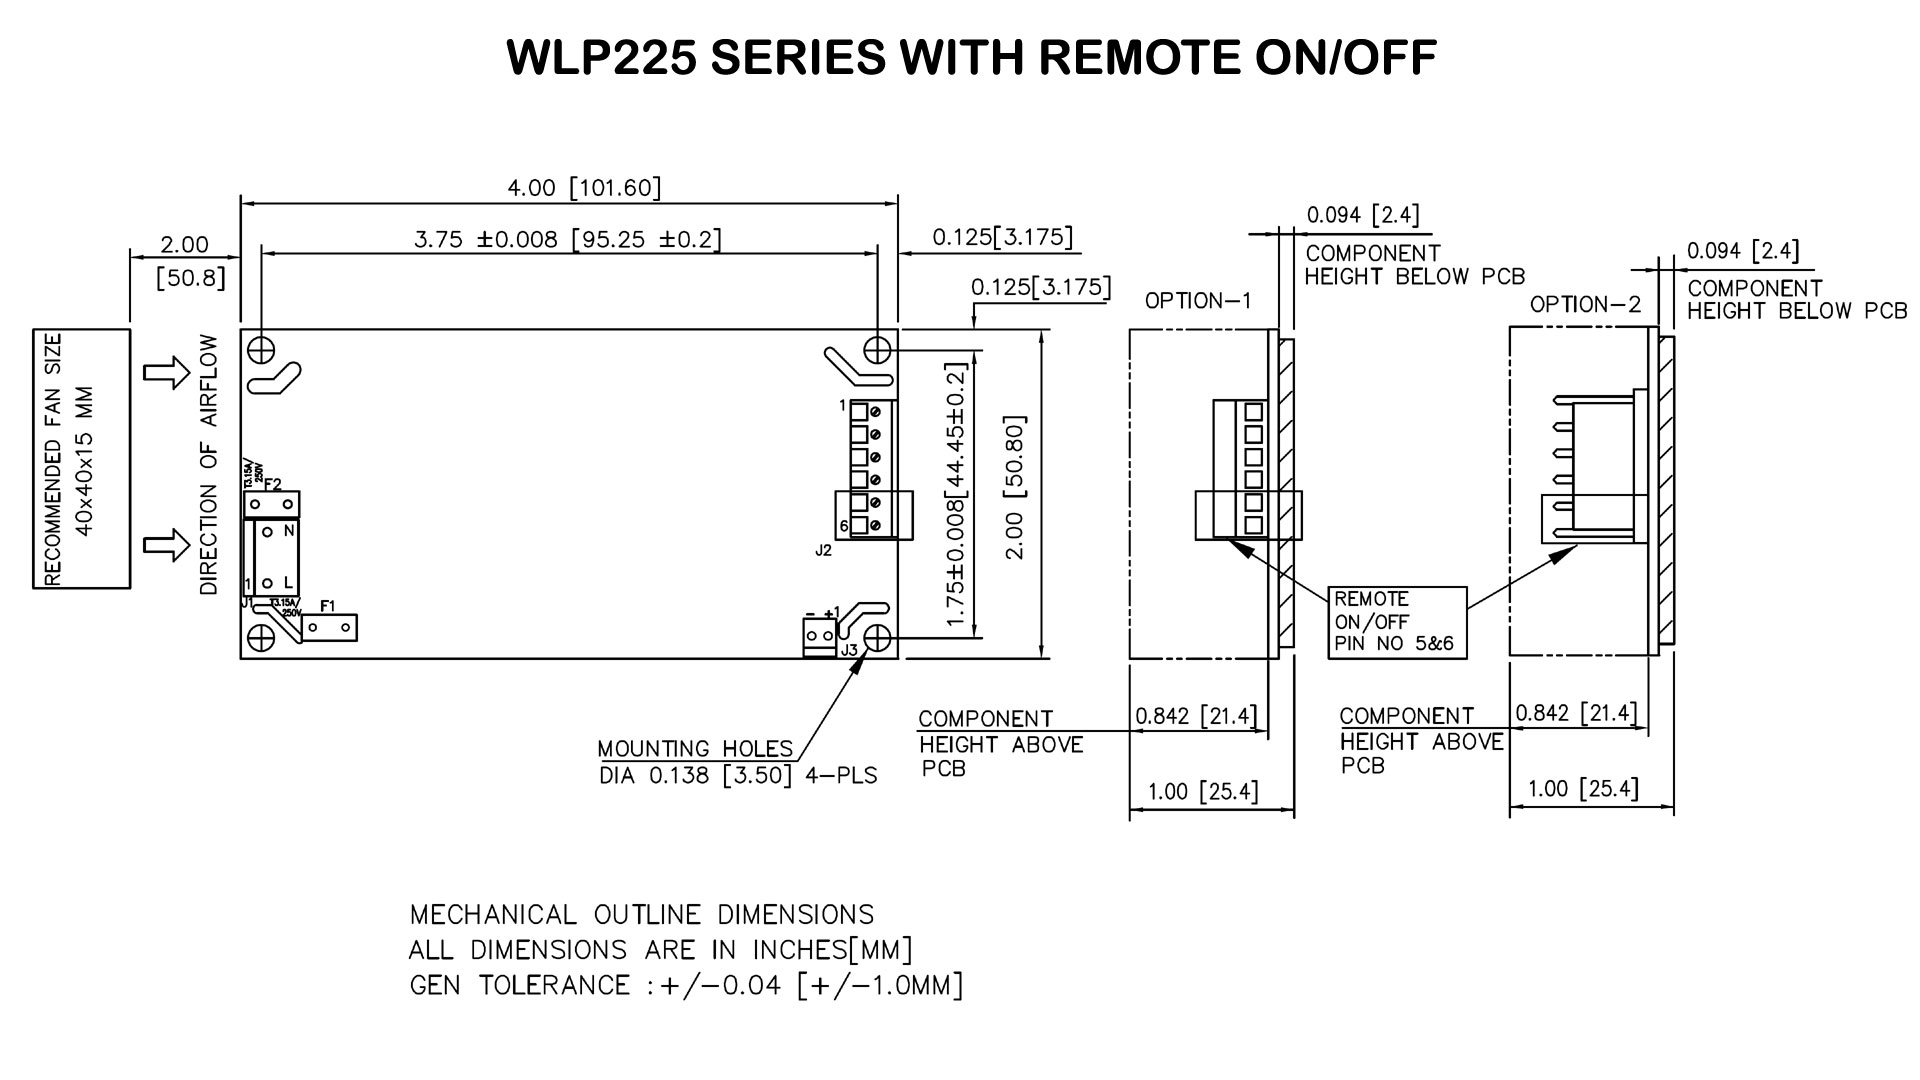 WLP225_REMOTE ON/OFF